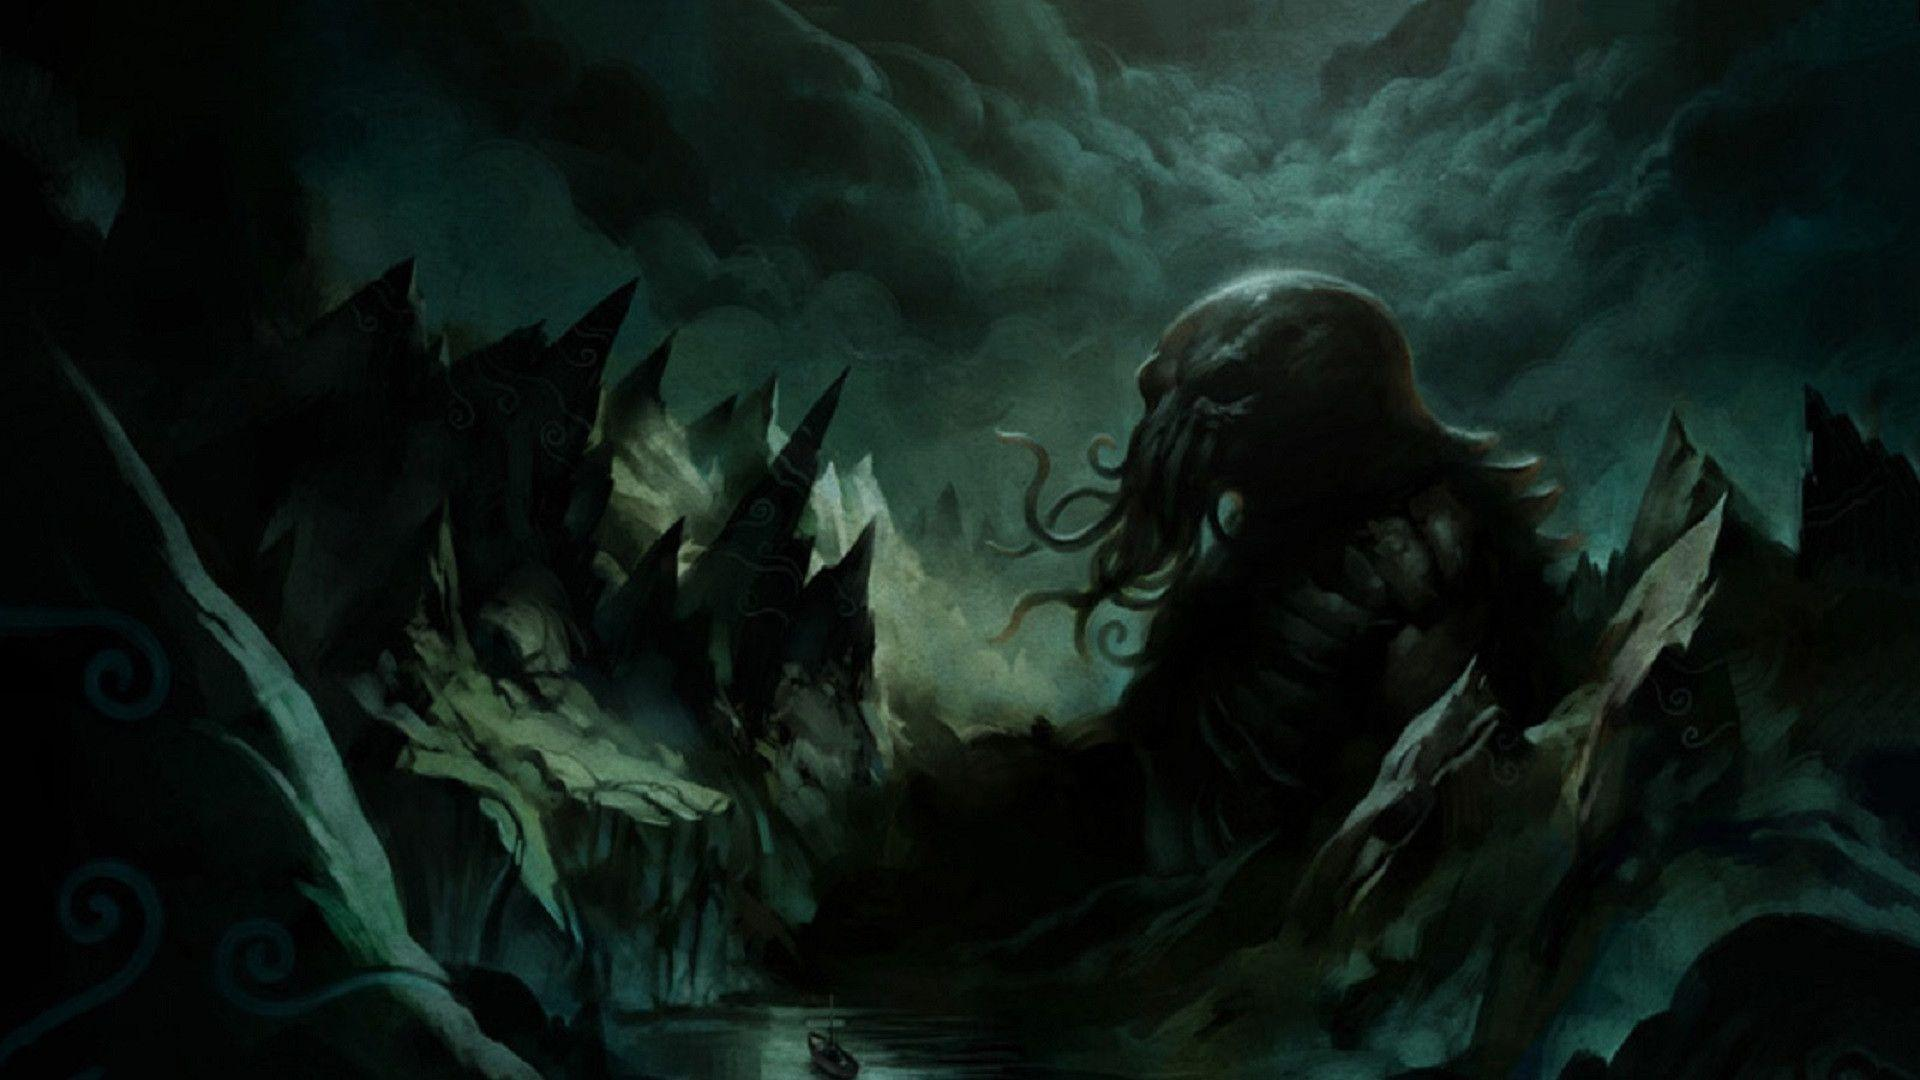 Cthulhu Computer Wallpapers, Desktop Backgrounds 1920x1080 Id: 475235